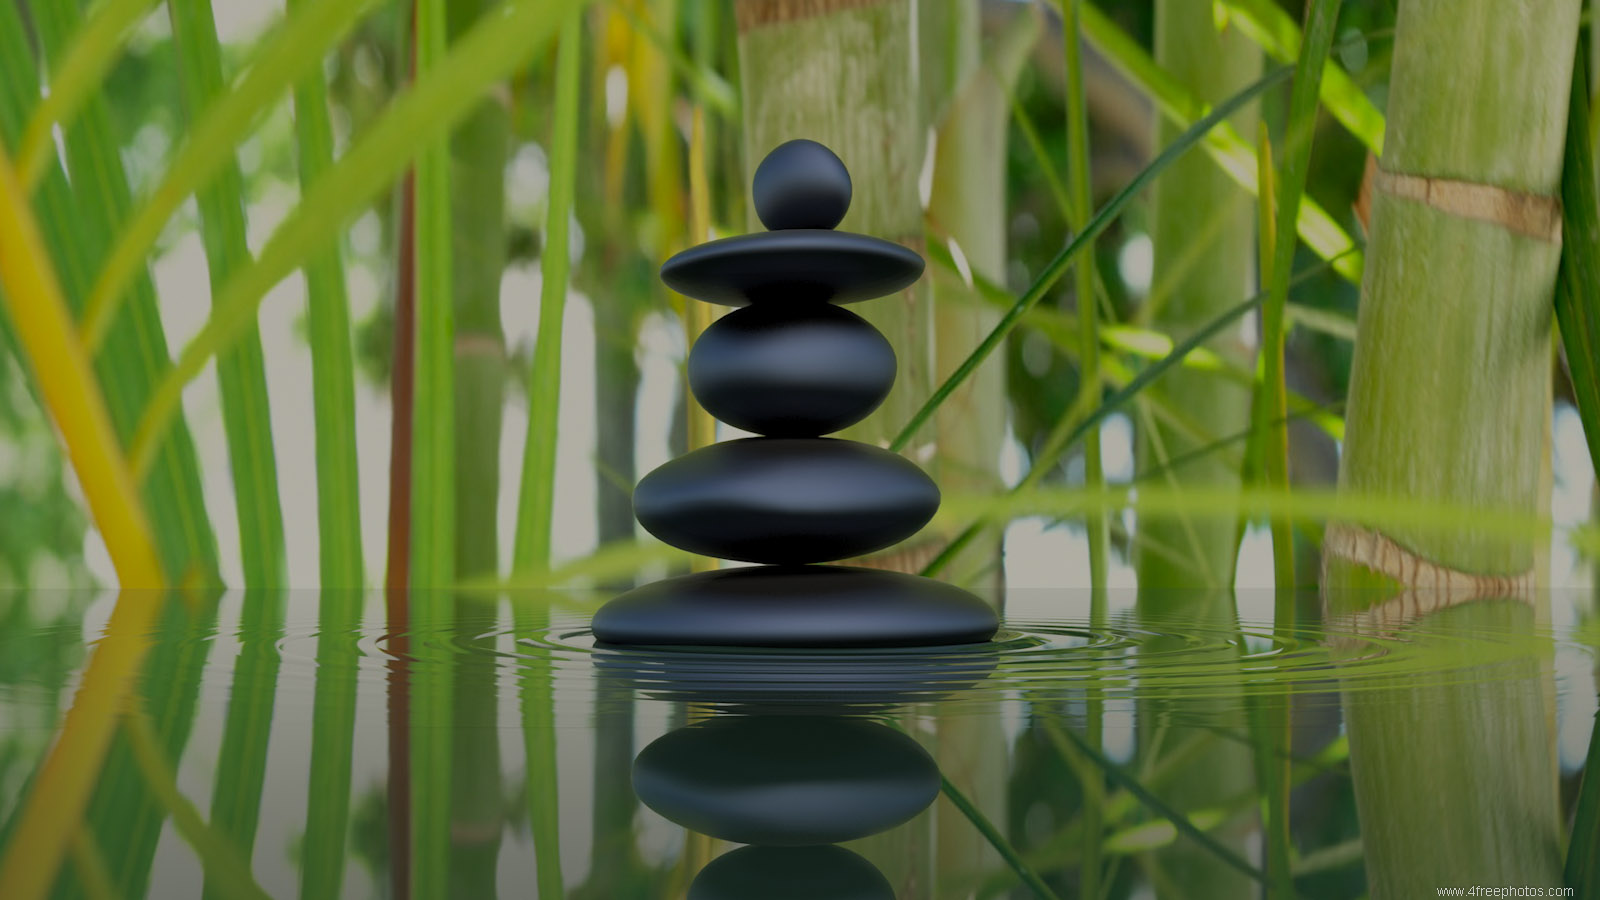 Zen stones and bamboo reflection in water